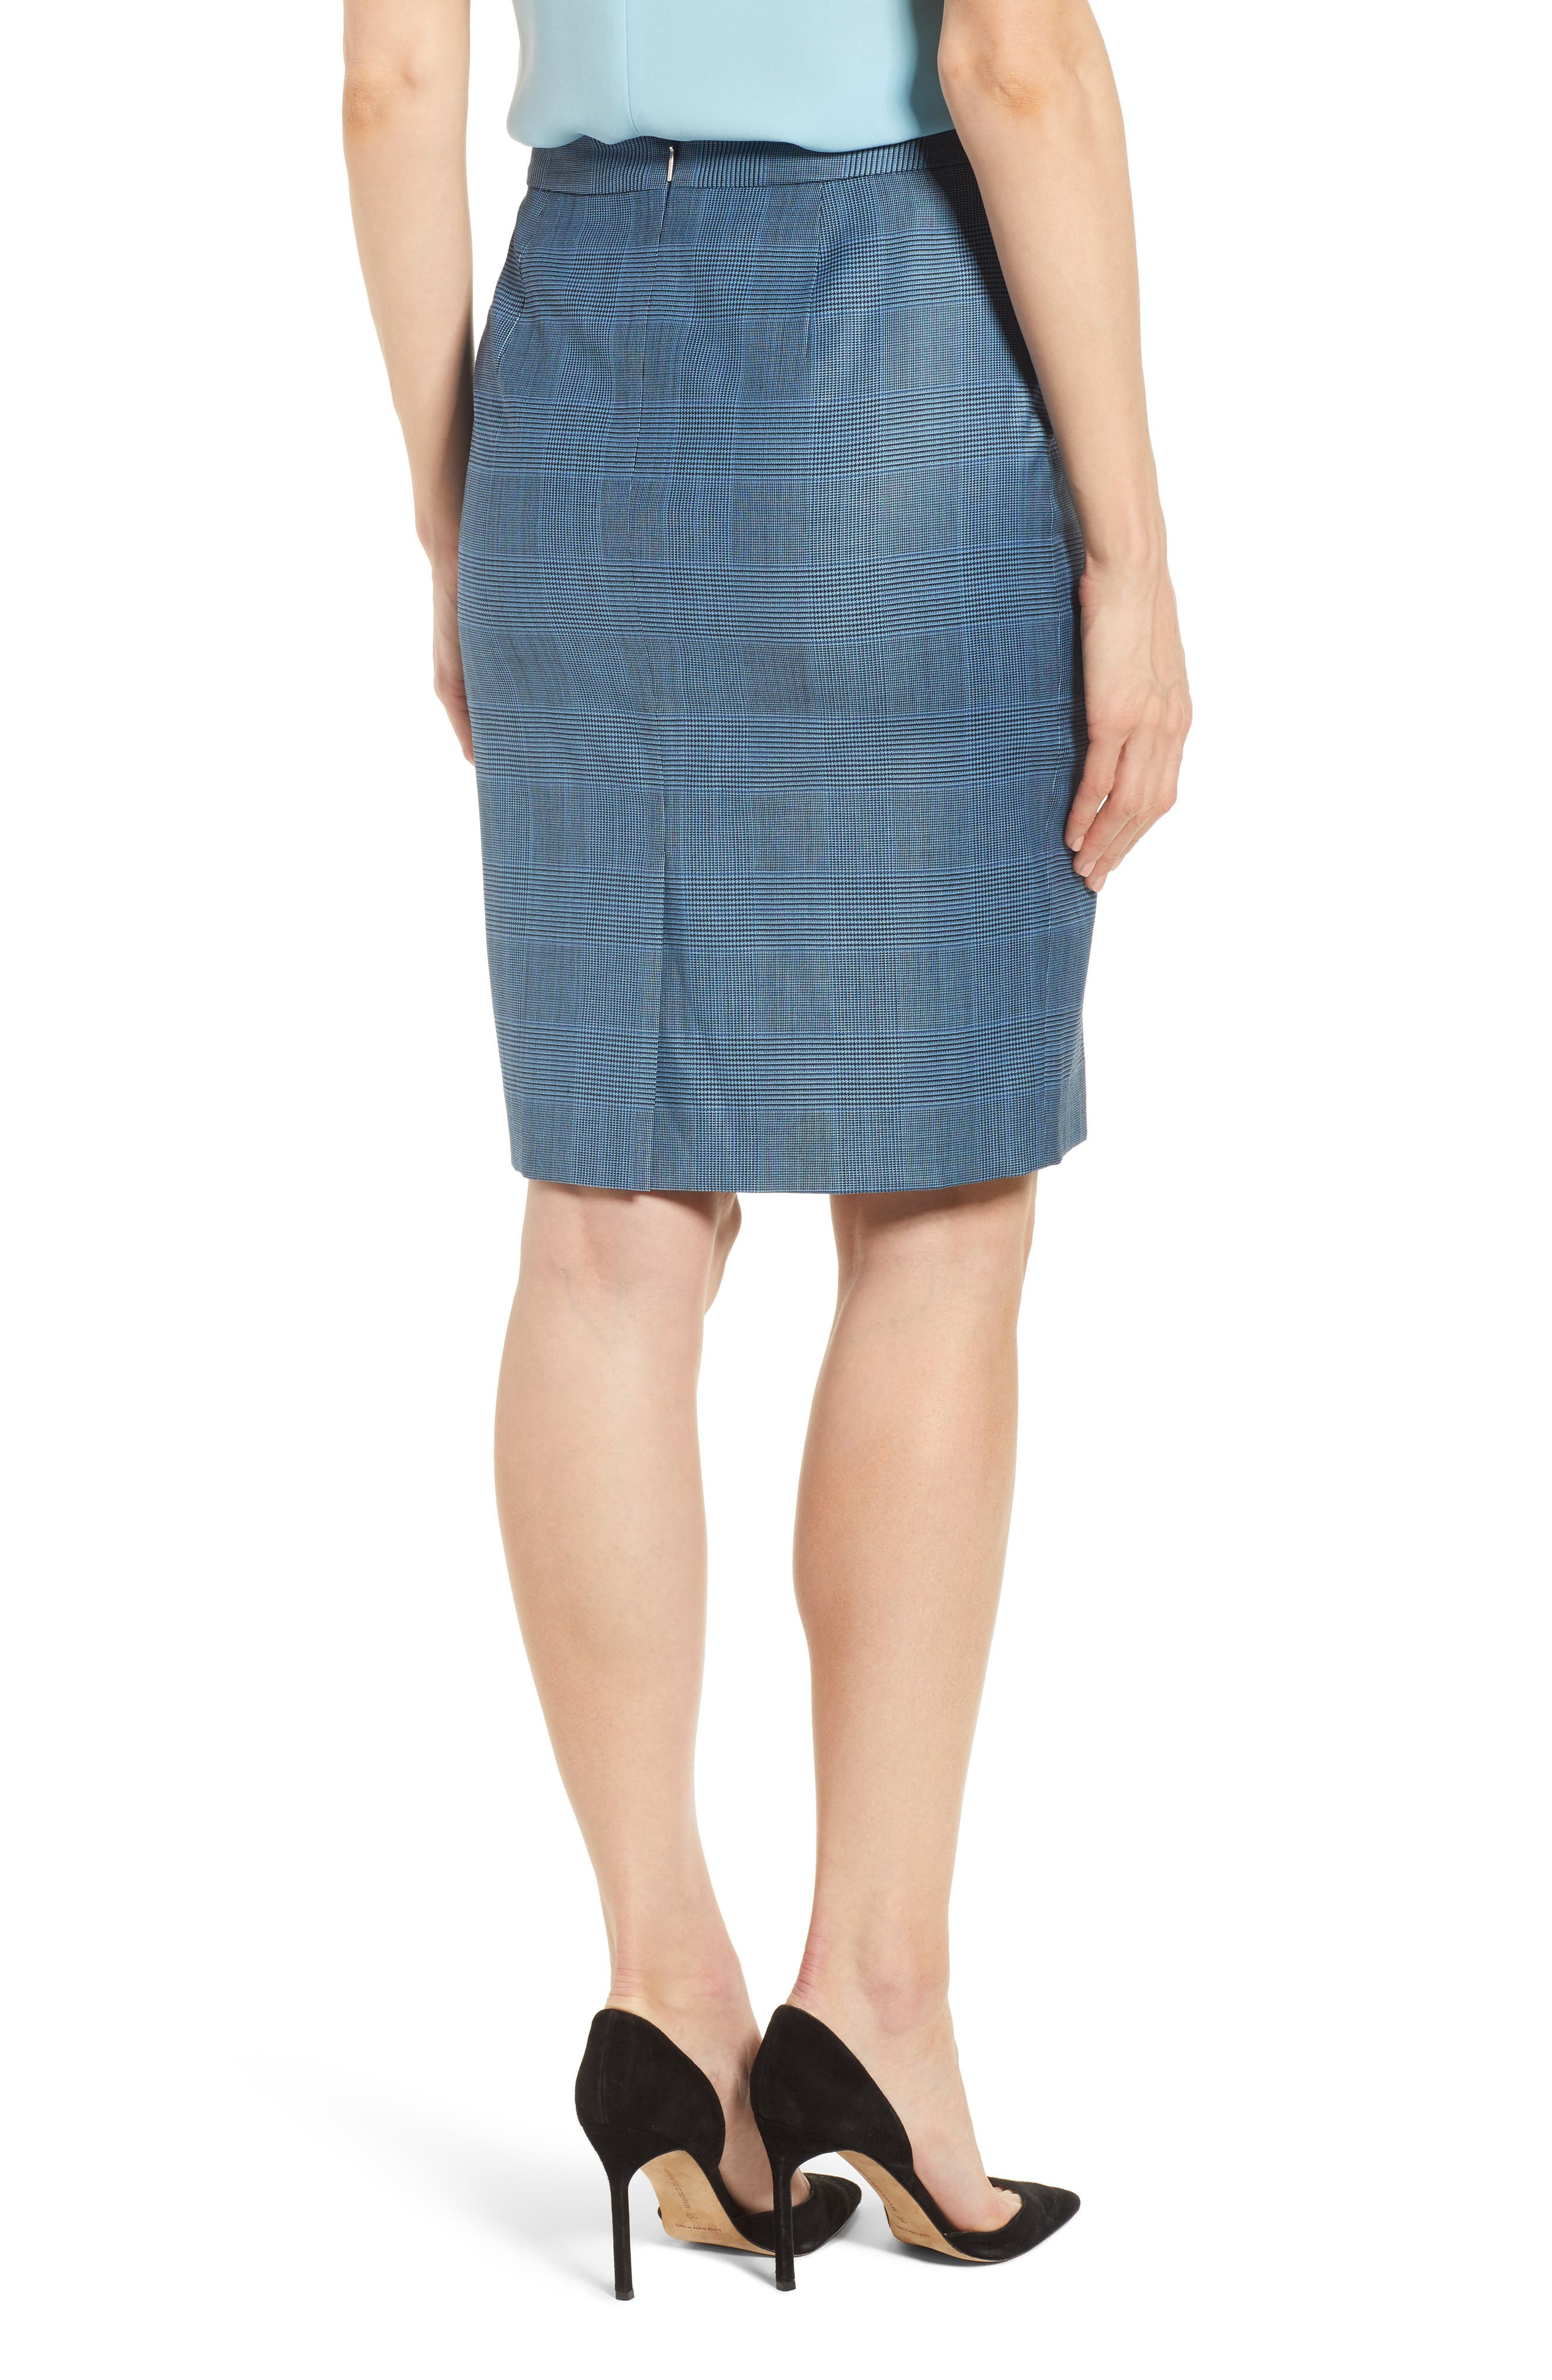 Vimena Glencheck Stretch Wool Pencil Skirt,                             Alternate thumbnail 2, color,